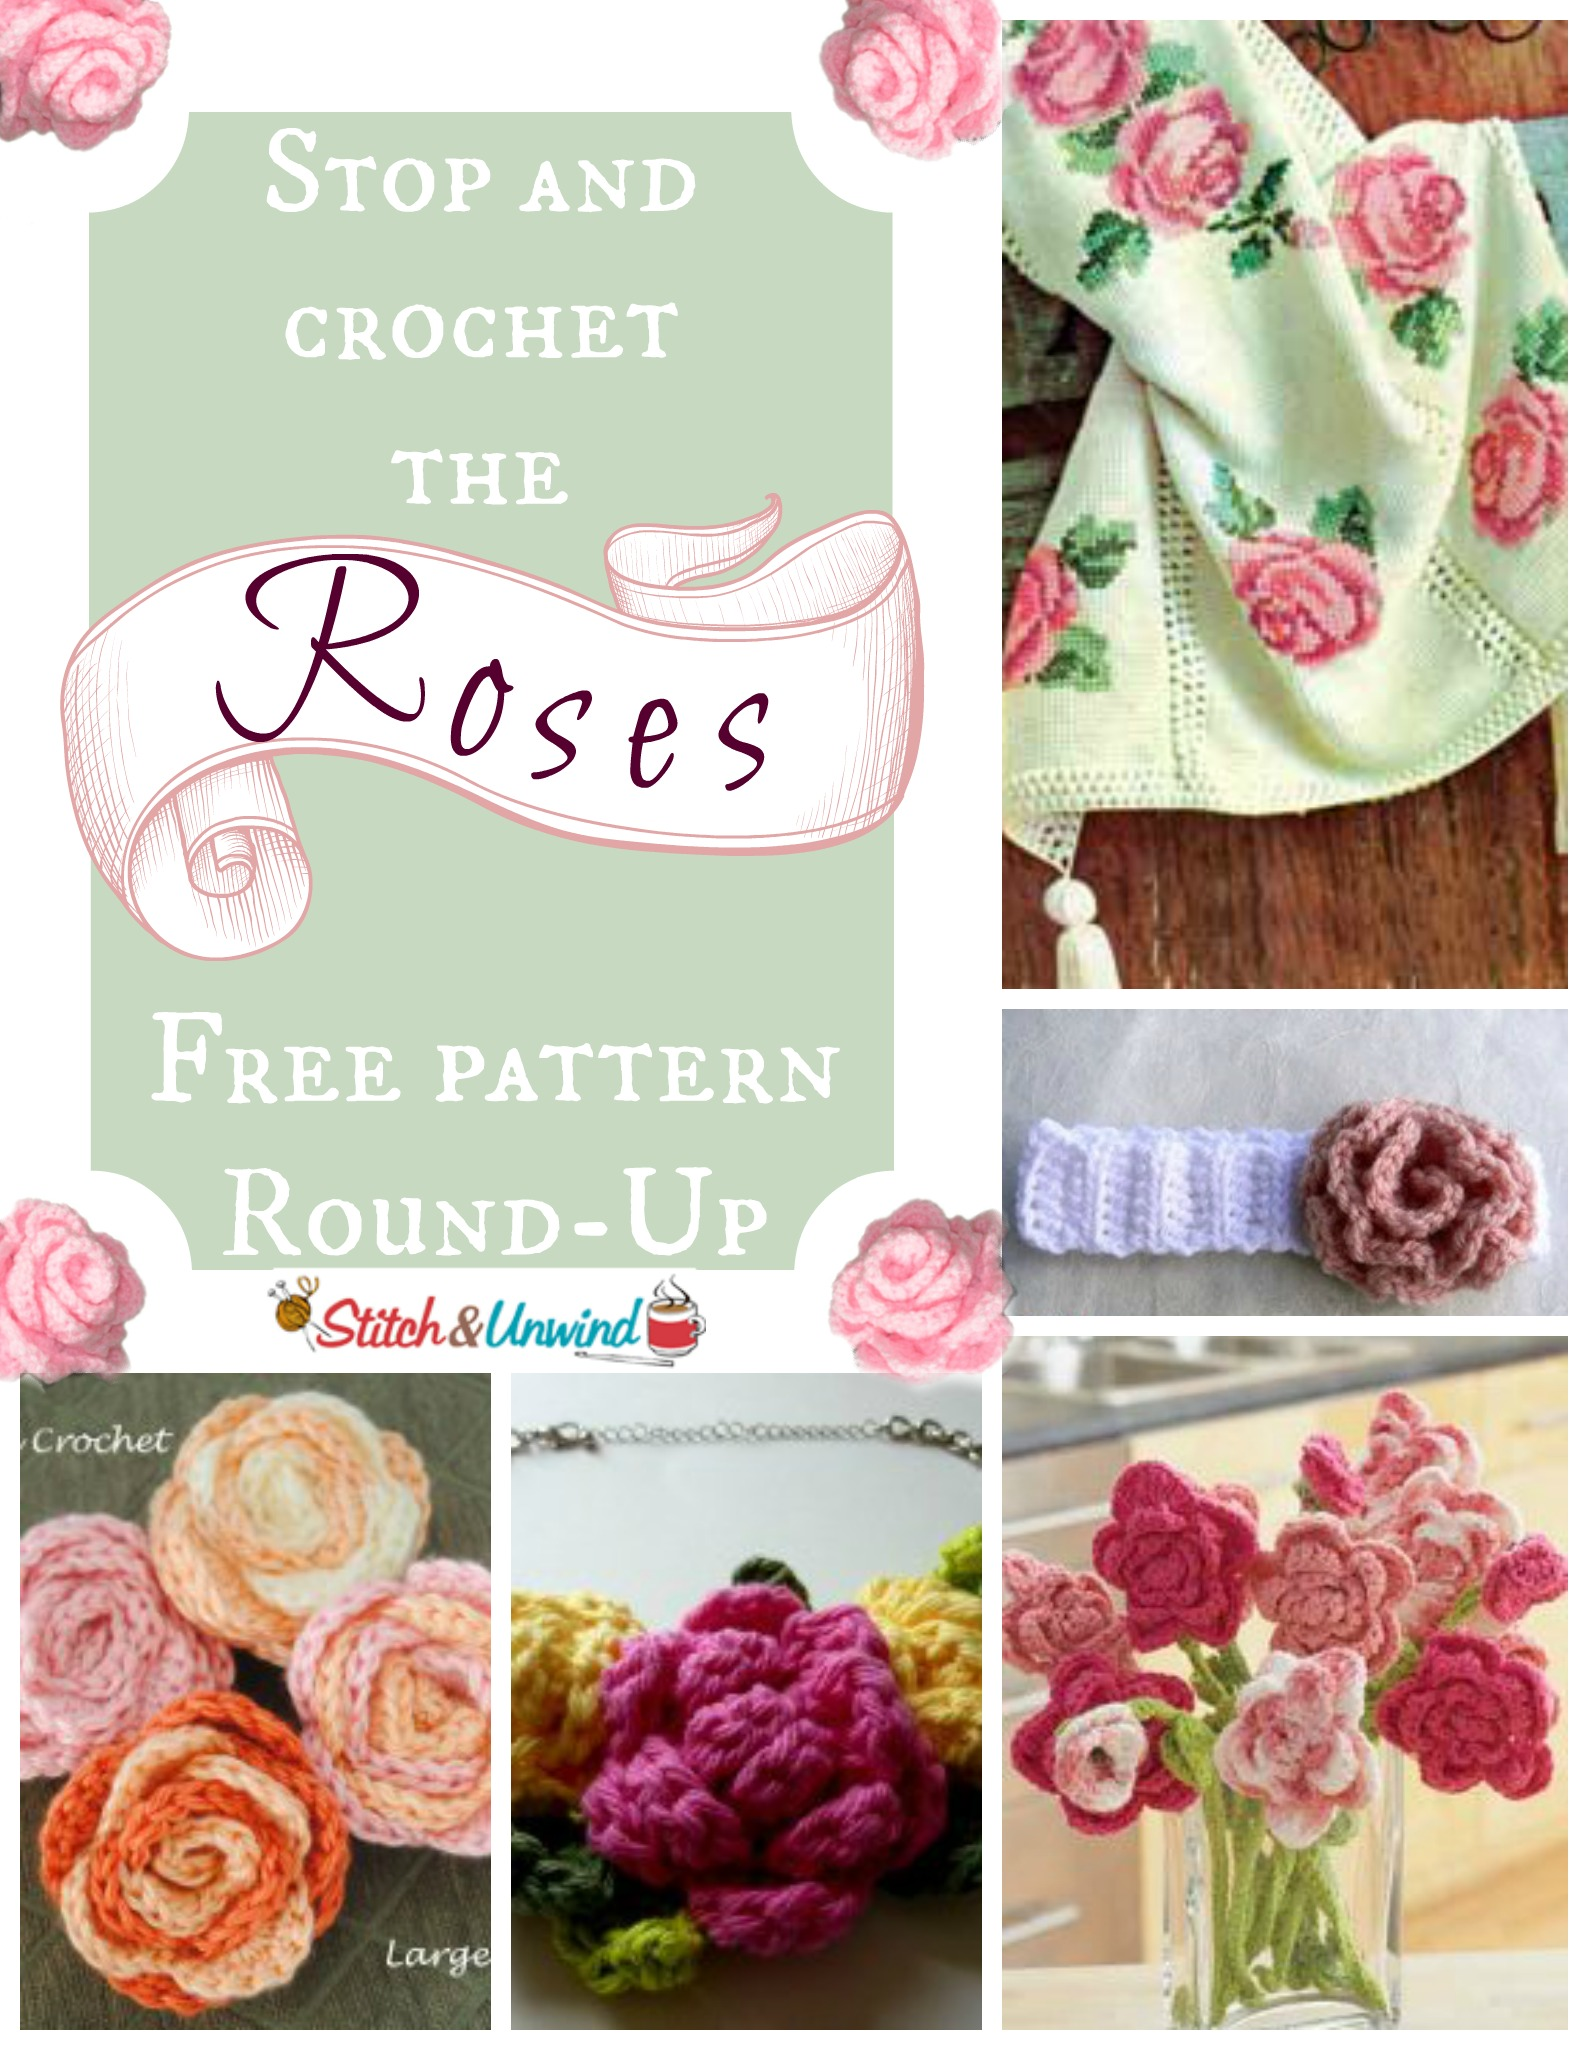 Stop and Crochet the Roses: Free Pattern Round-Up - Stitch and Unwind